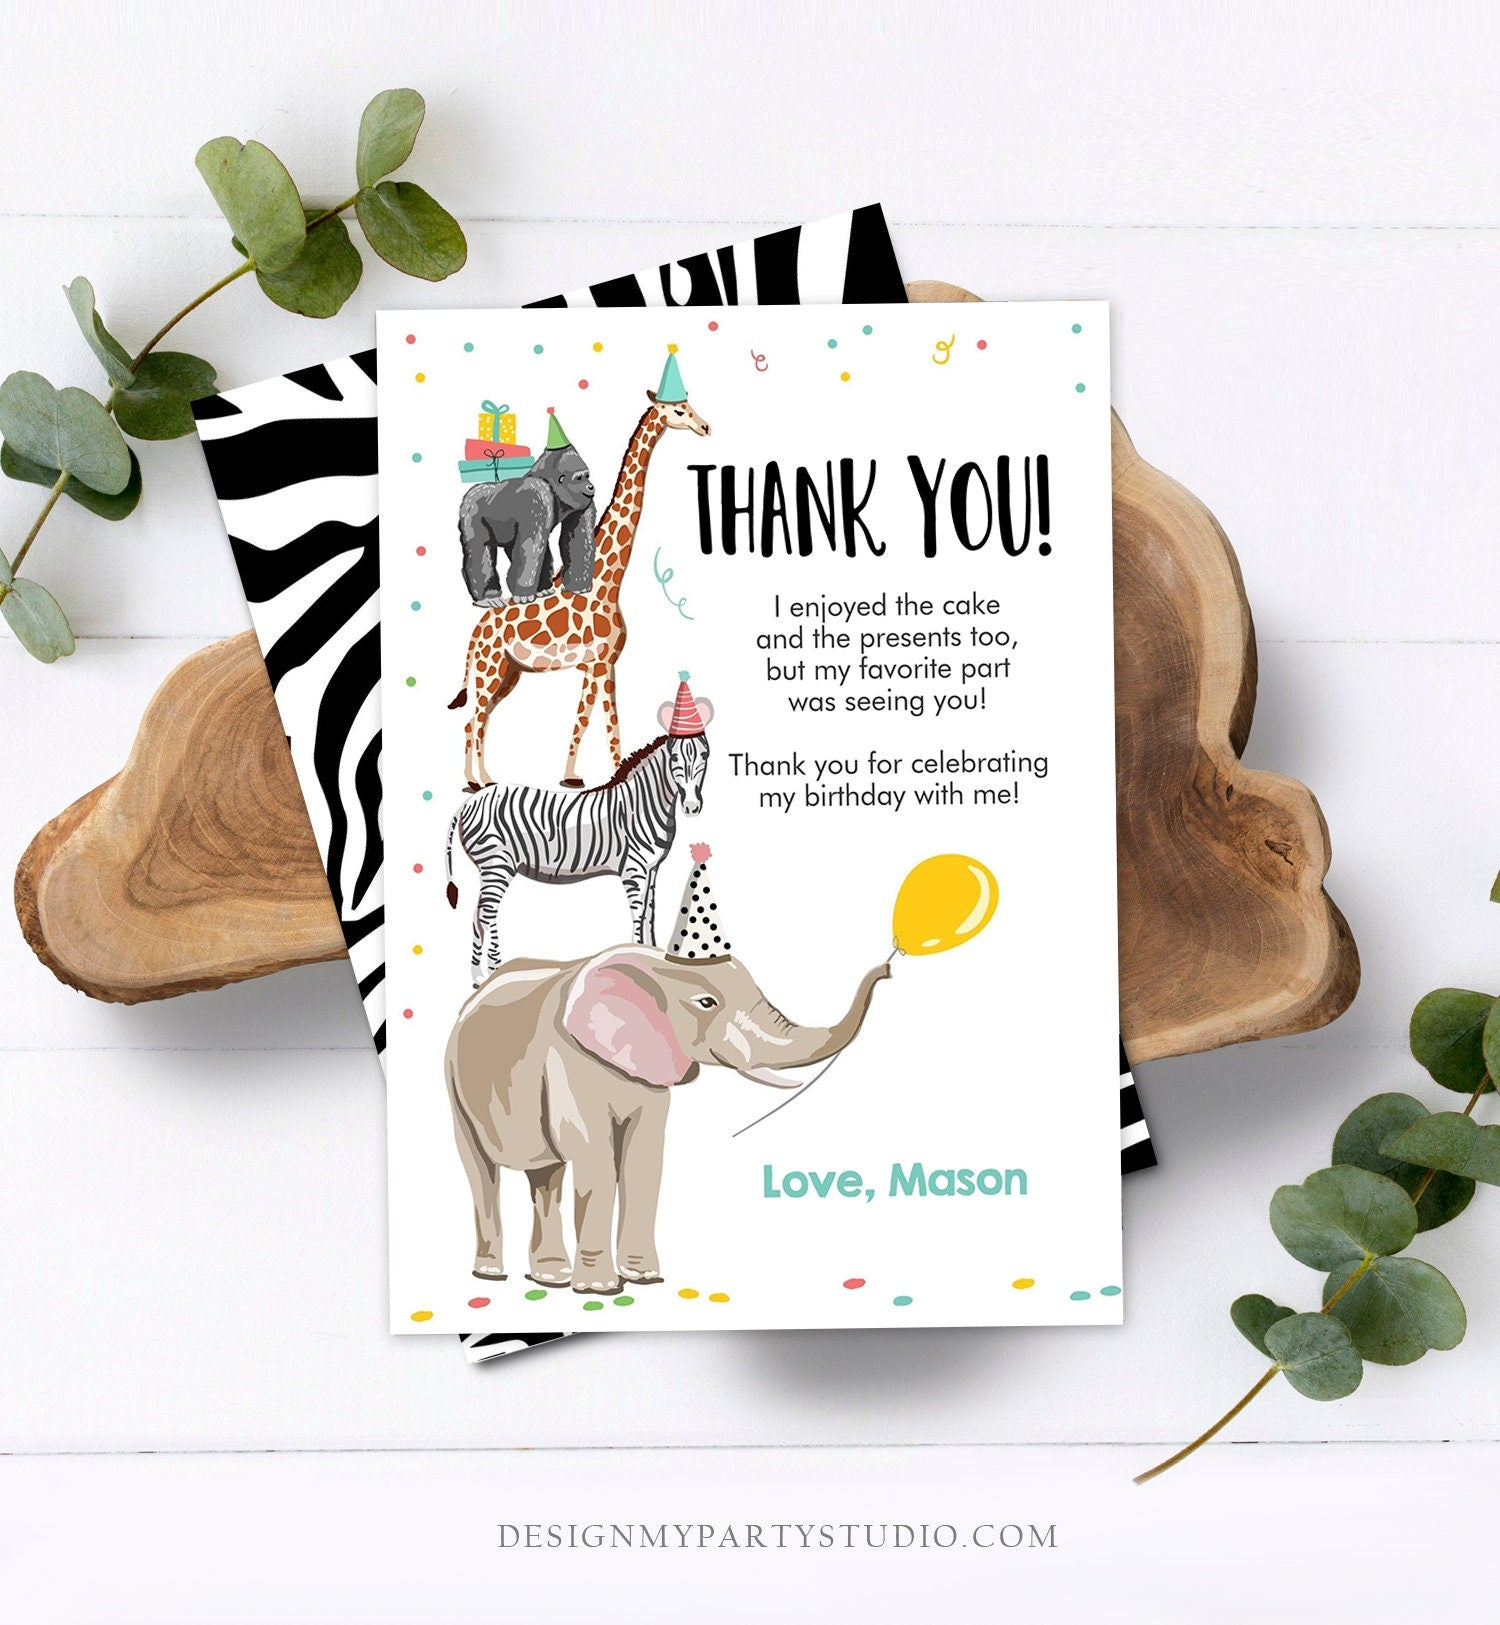 Editable Thank You Card Party Animals Thank you Note Wild Safari Animals Boy Jungle Zoo Download Printable Template Digital Corjl 0142